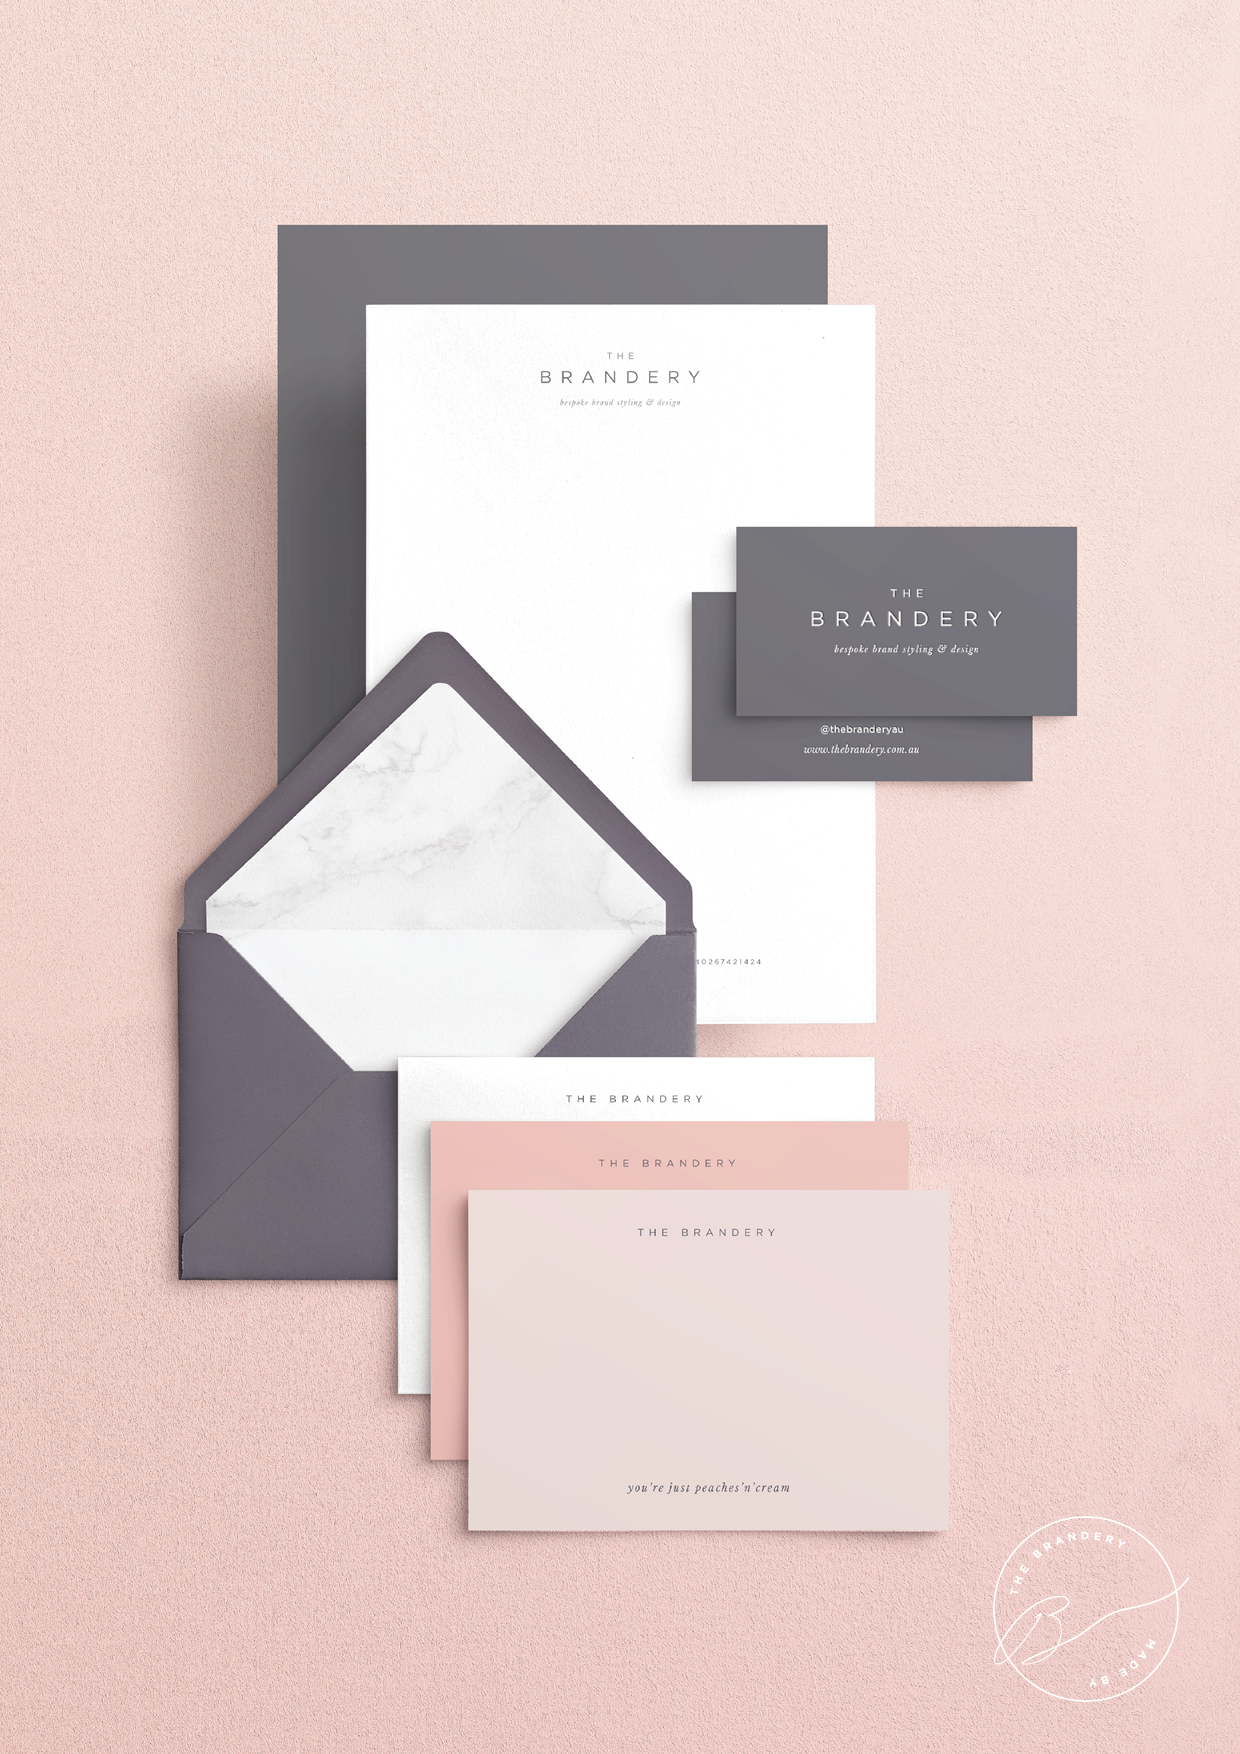 stationery design by the brandery, australia. business best resume word format download software developer examples 2019 career objective of marketing student